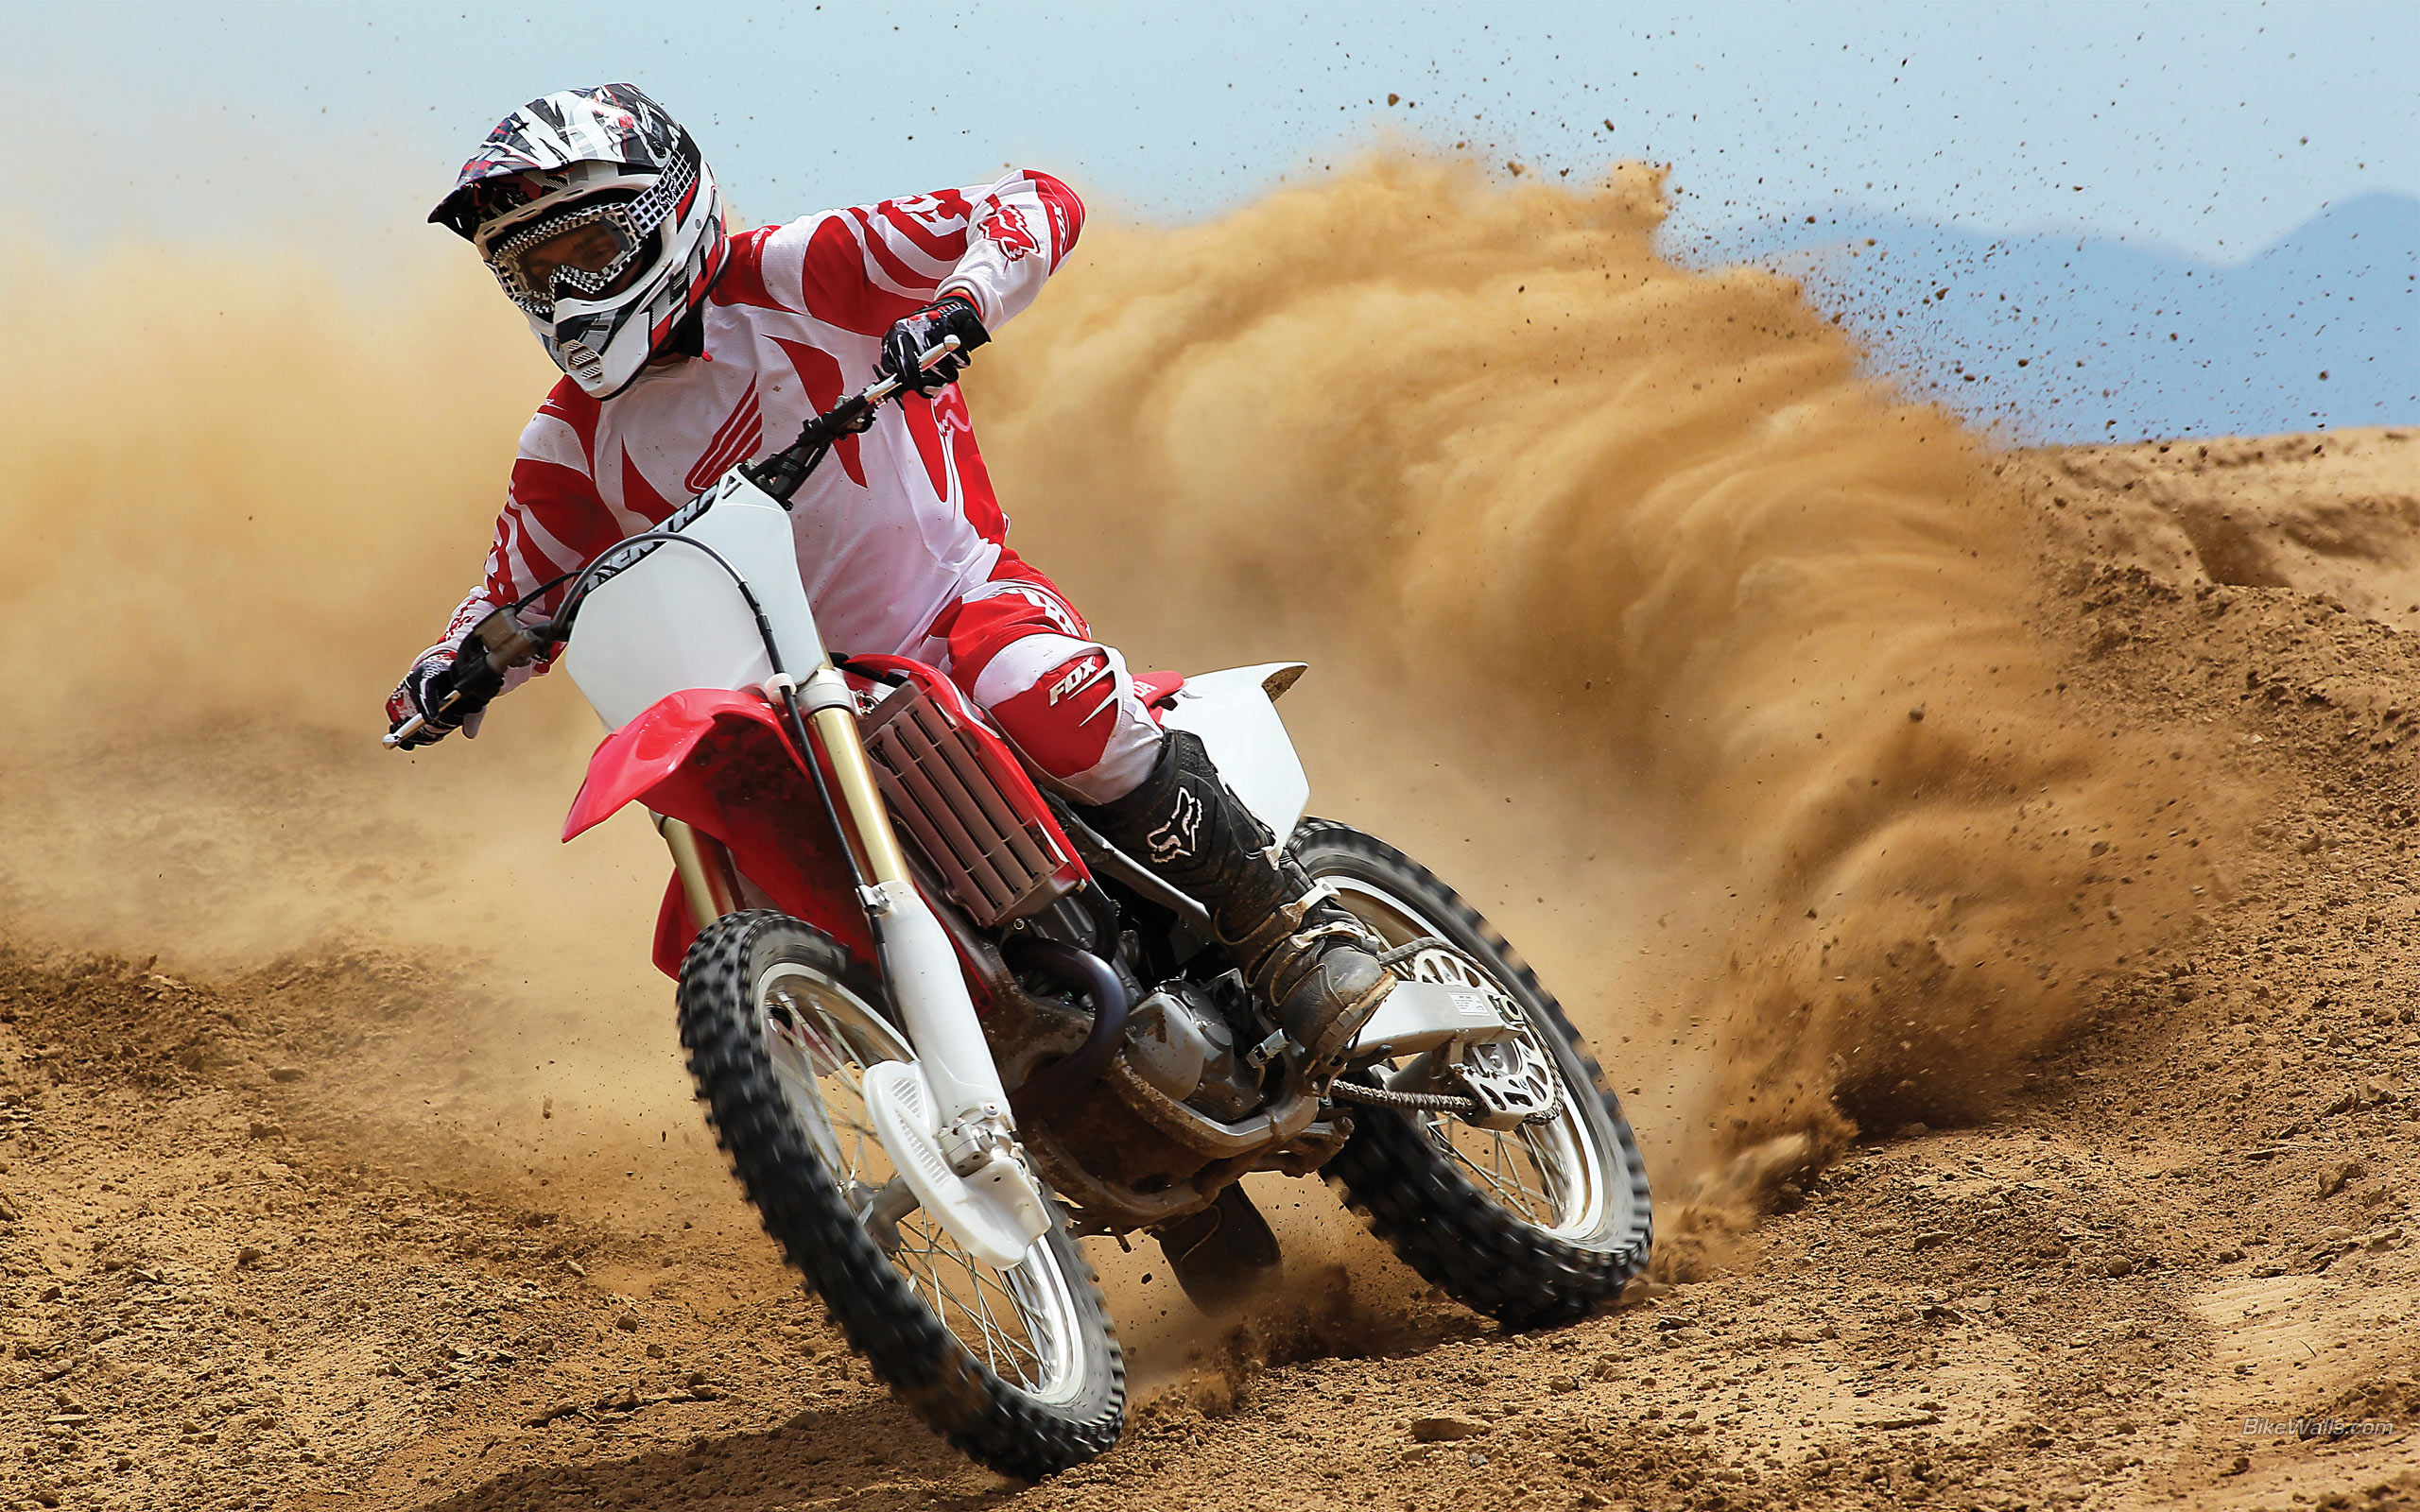 Honda Motocross CRF450 R   Motorcycles Photo 31816510 2560x1600